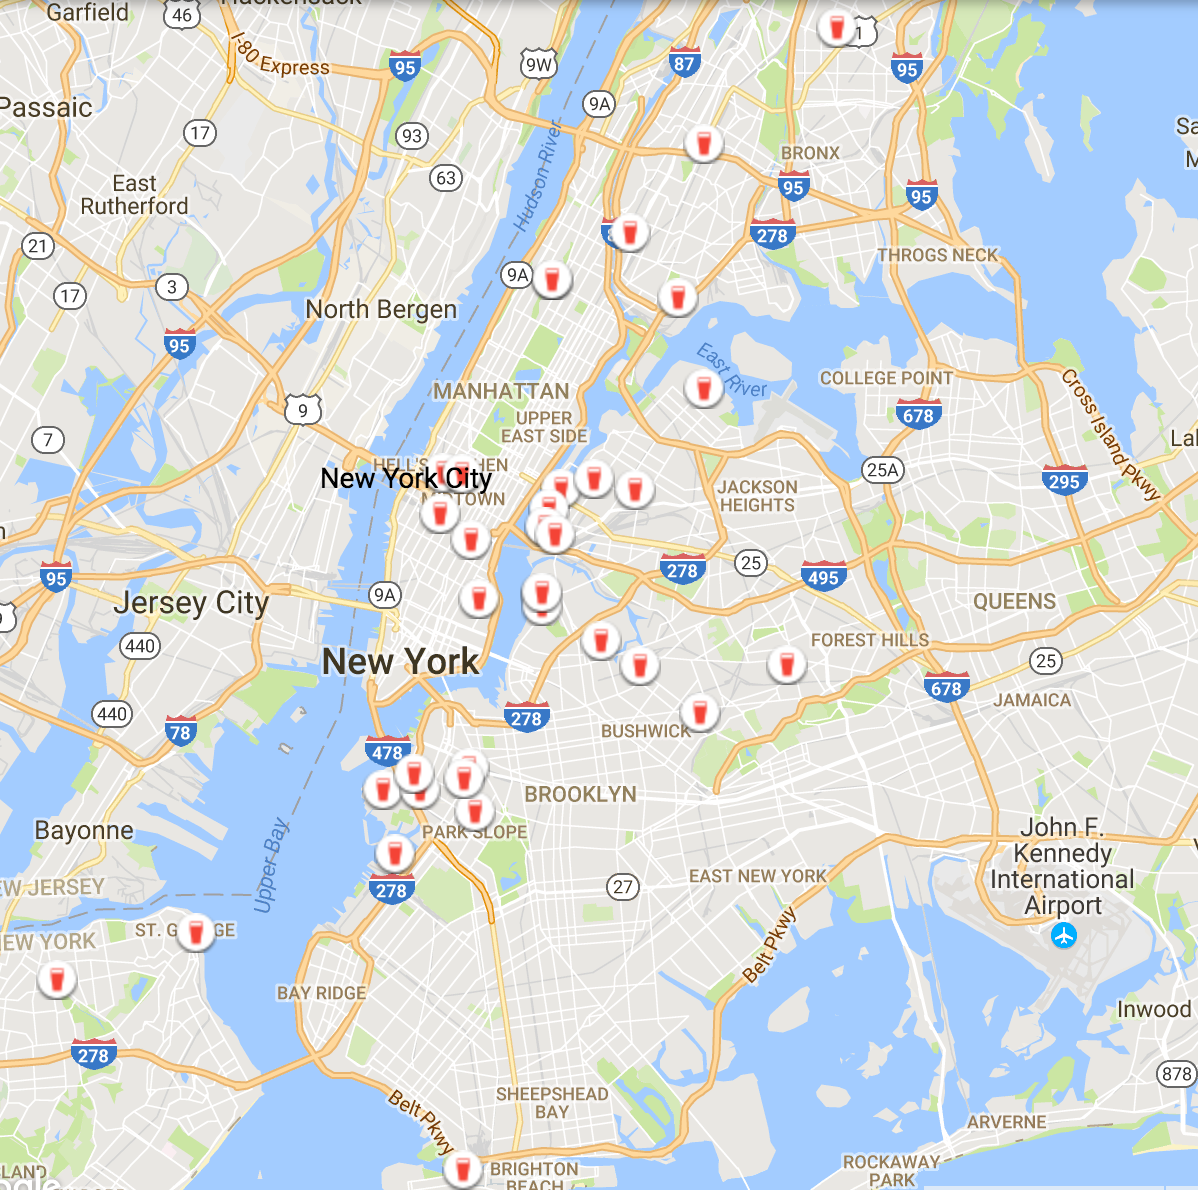 Current breweries in the five boroughs of New York City.